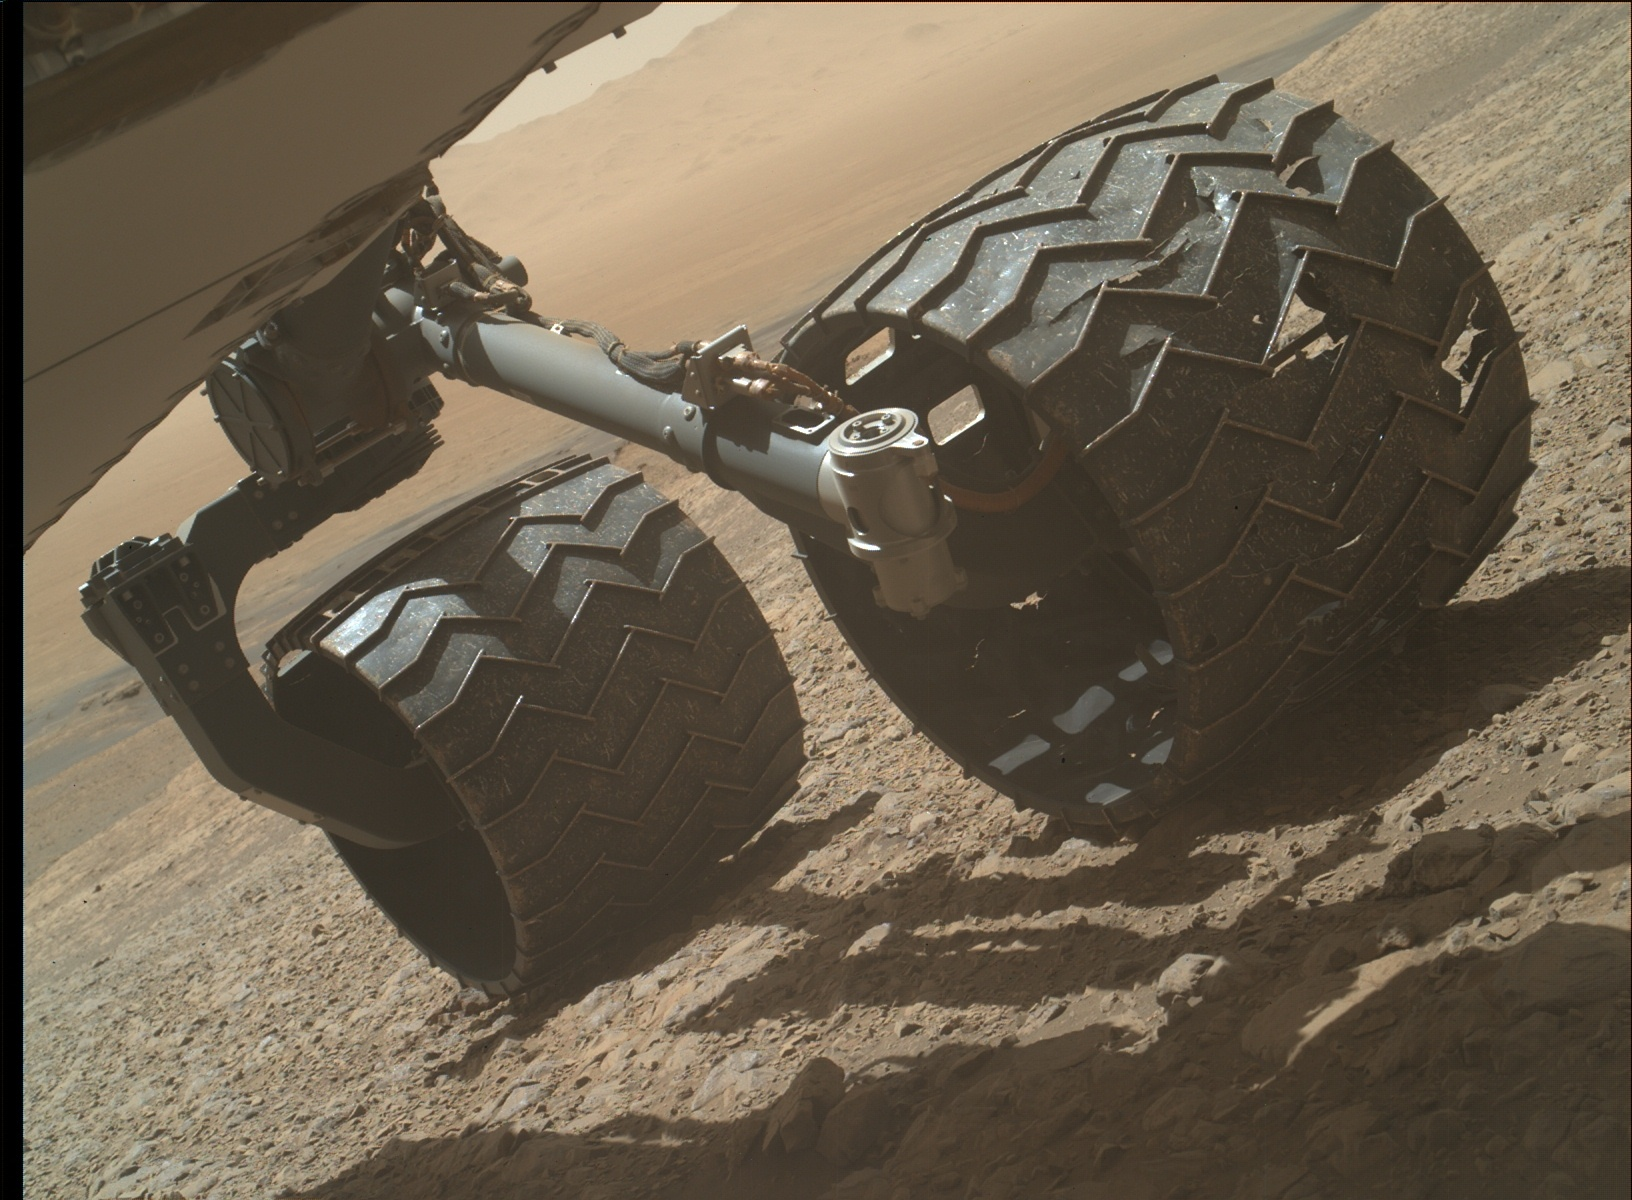 Nasa's Mars rover Curiosity acquired this image using its Mars Hand Lens Imager (MAHLI) on Sol 1989